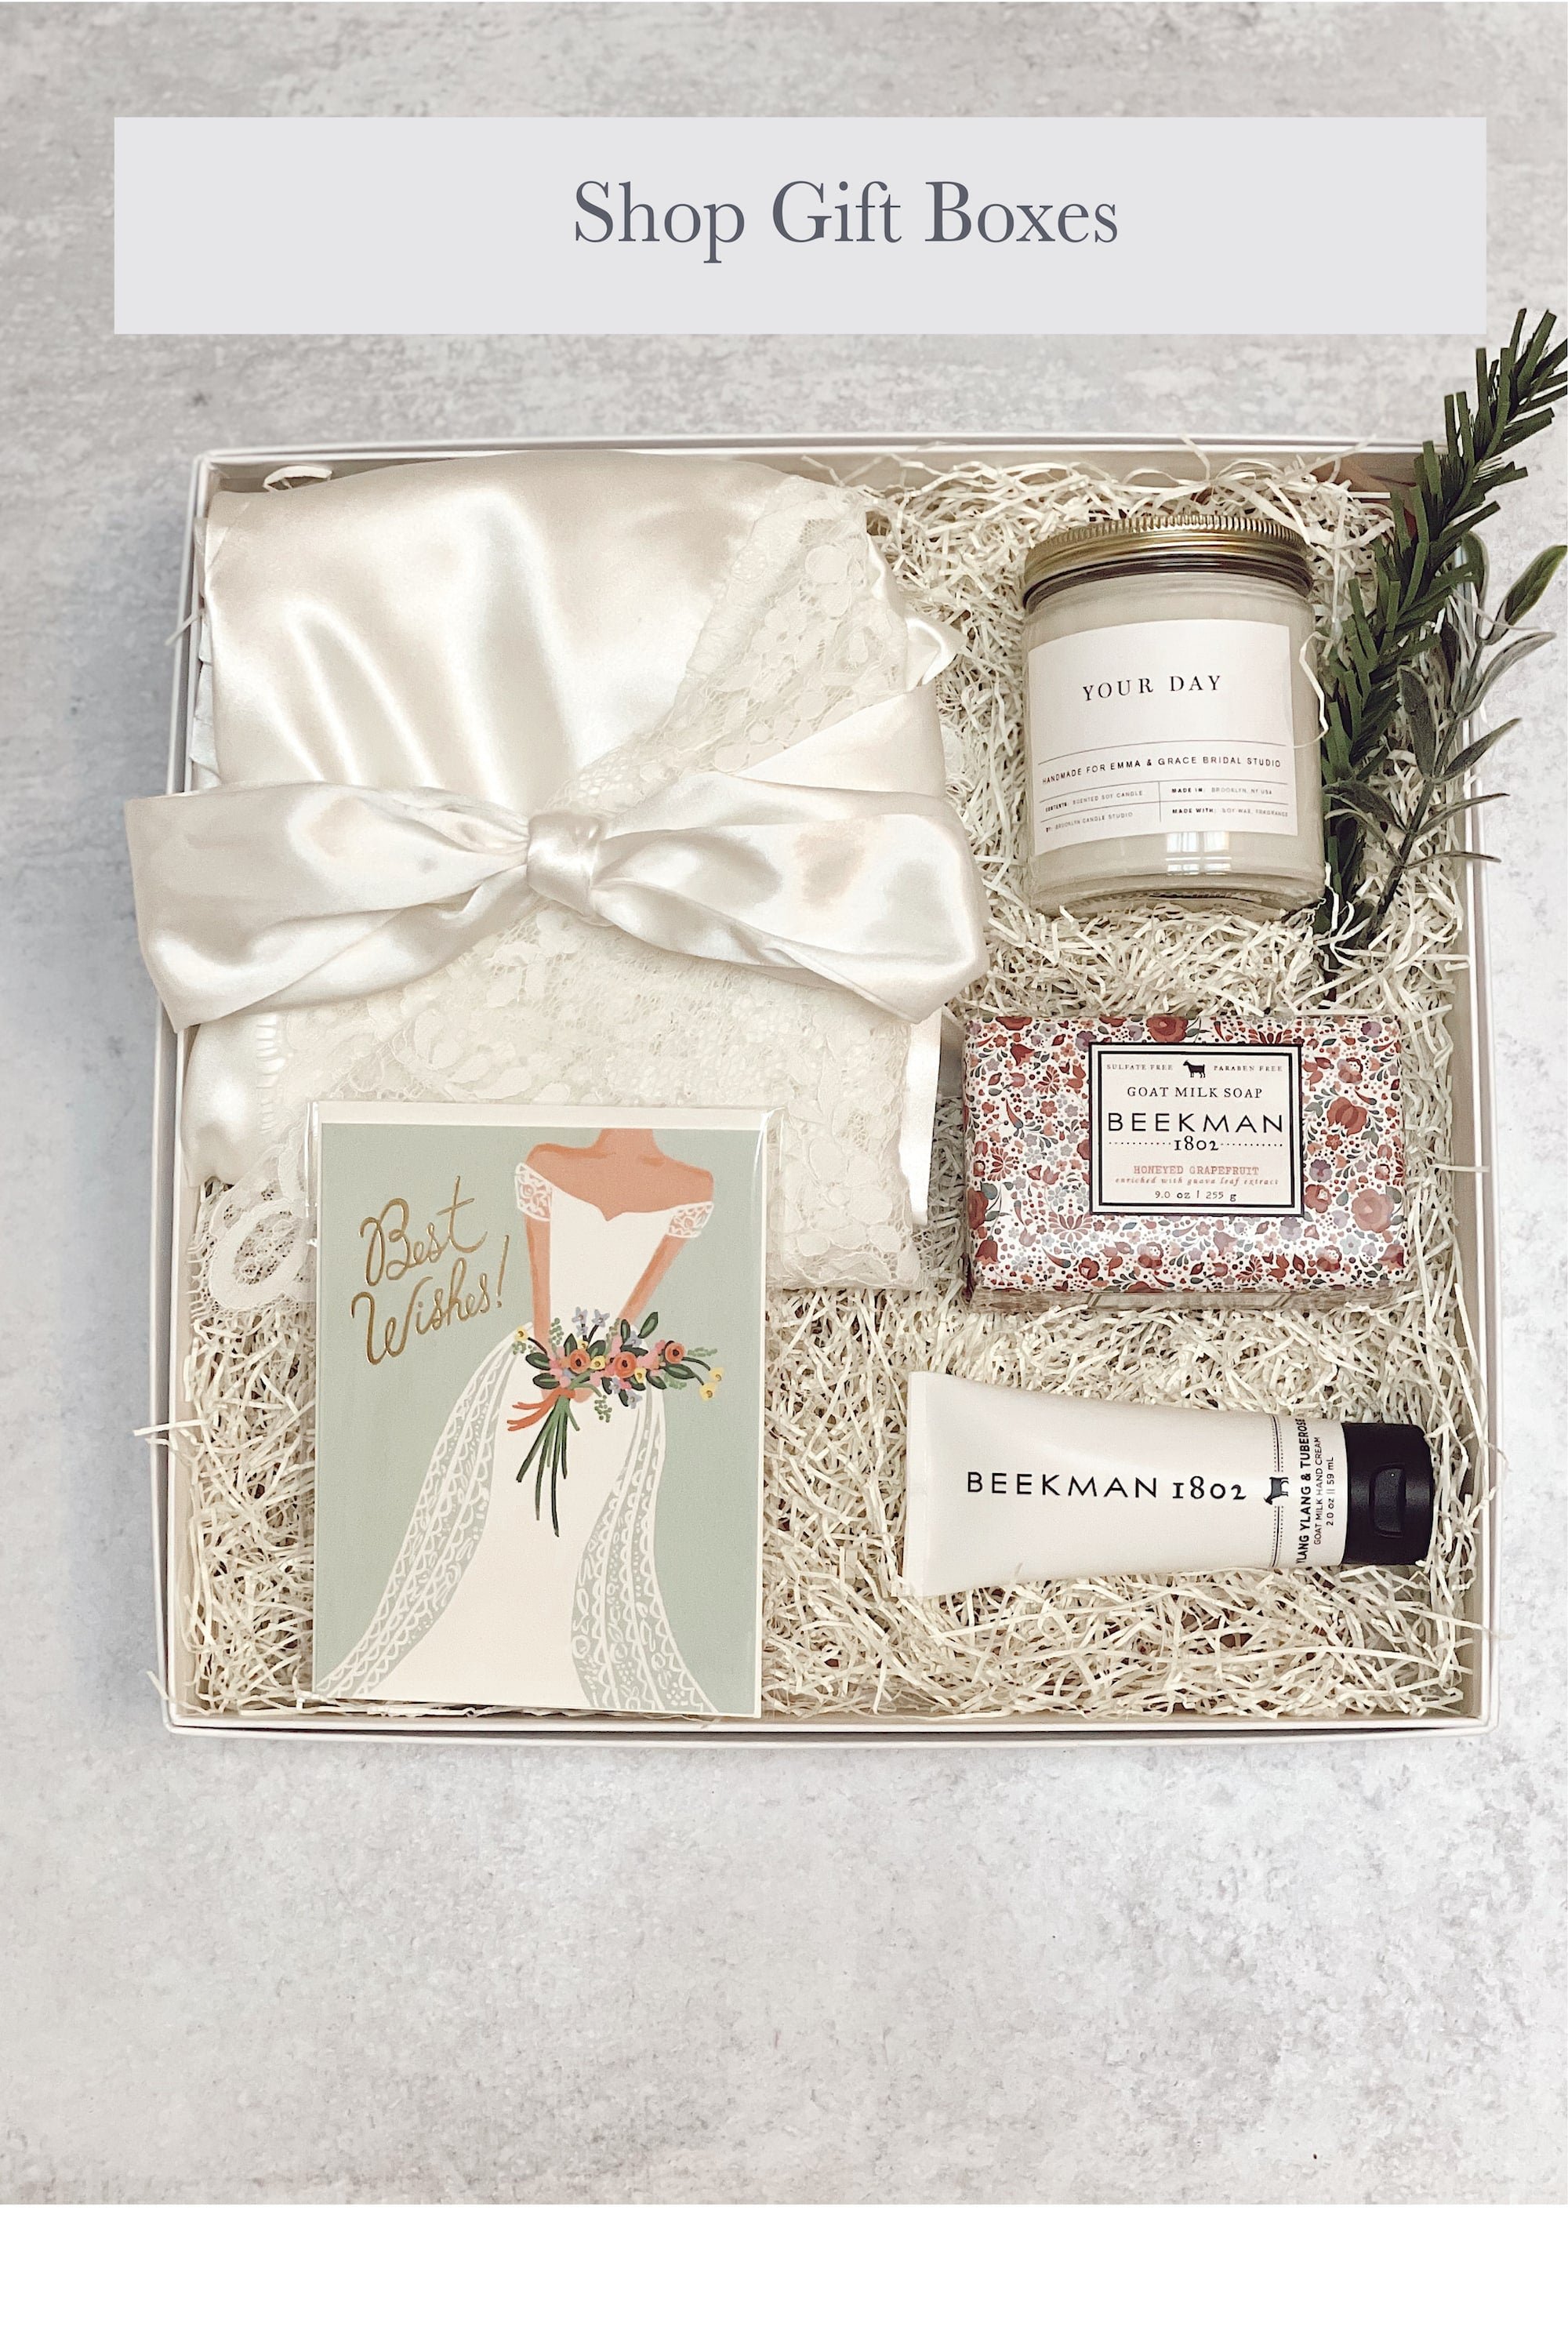 shop online store for premade gift boxes for bride and bridesmaids